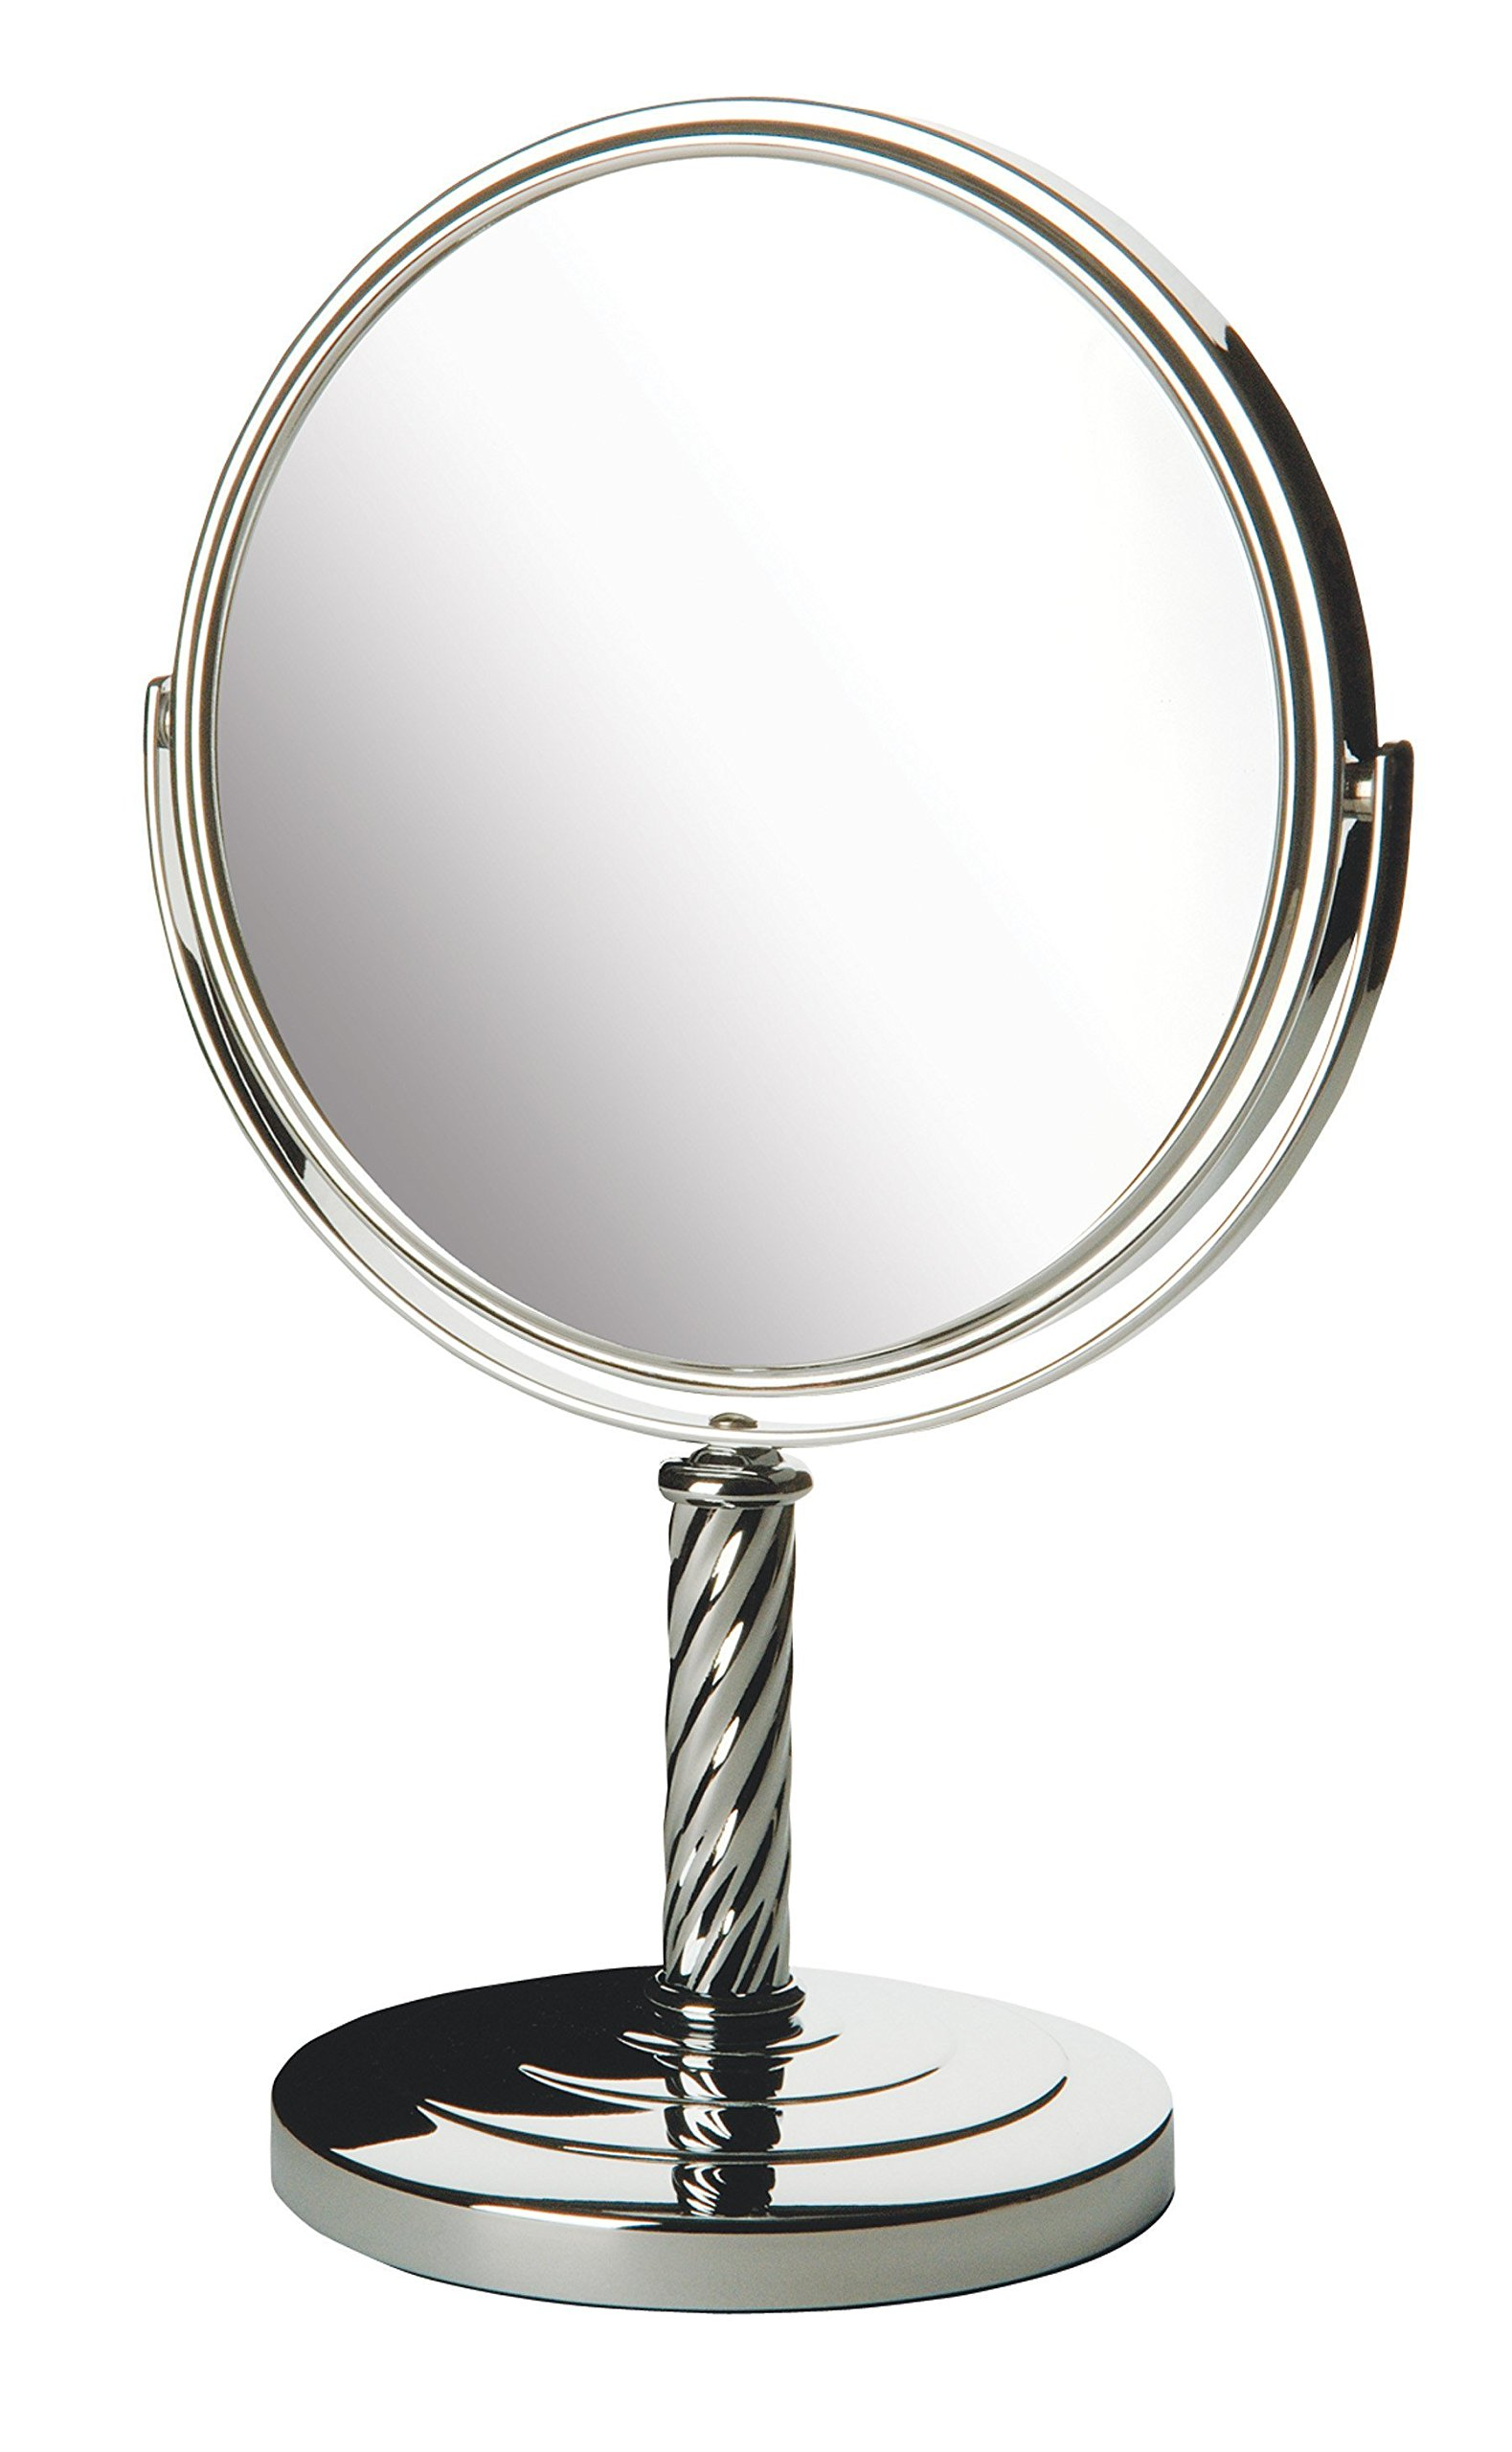 Jerdon LT5165C 8-Inch Two-Sided Mirror with 5x Magnification, Chrome Finish